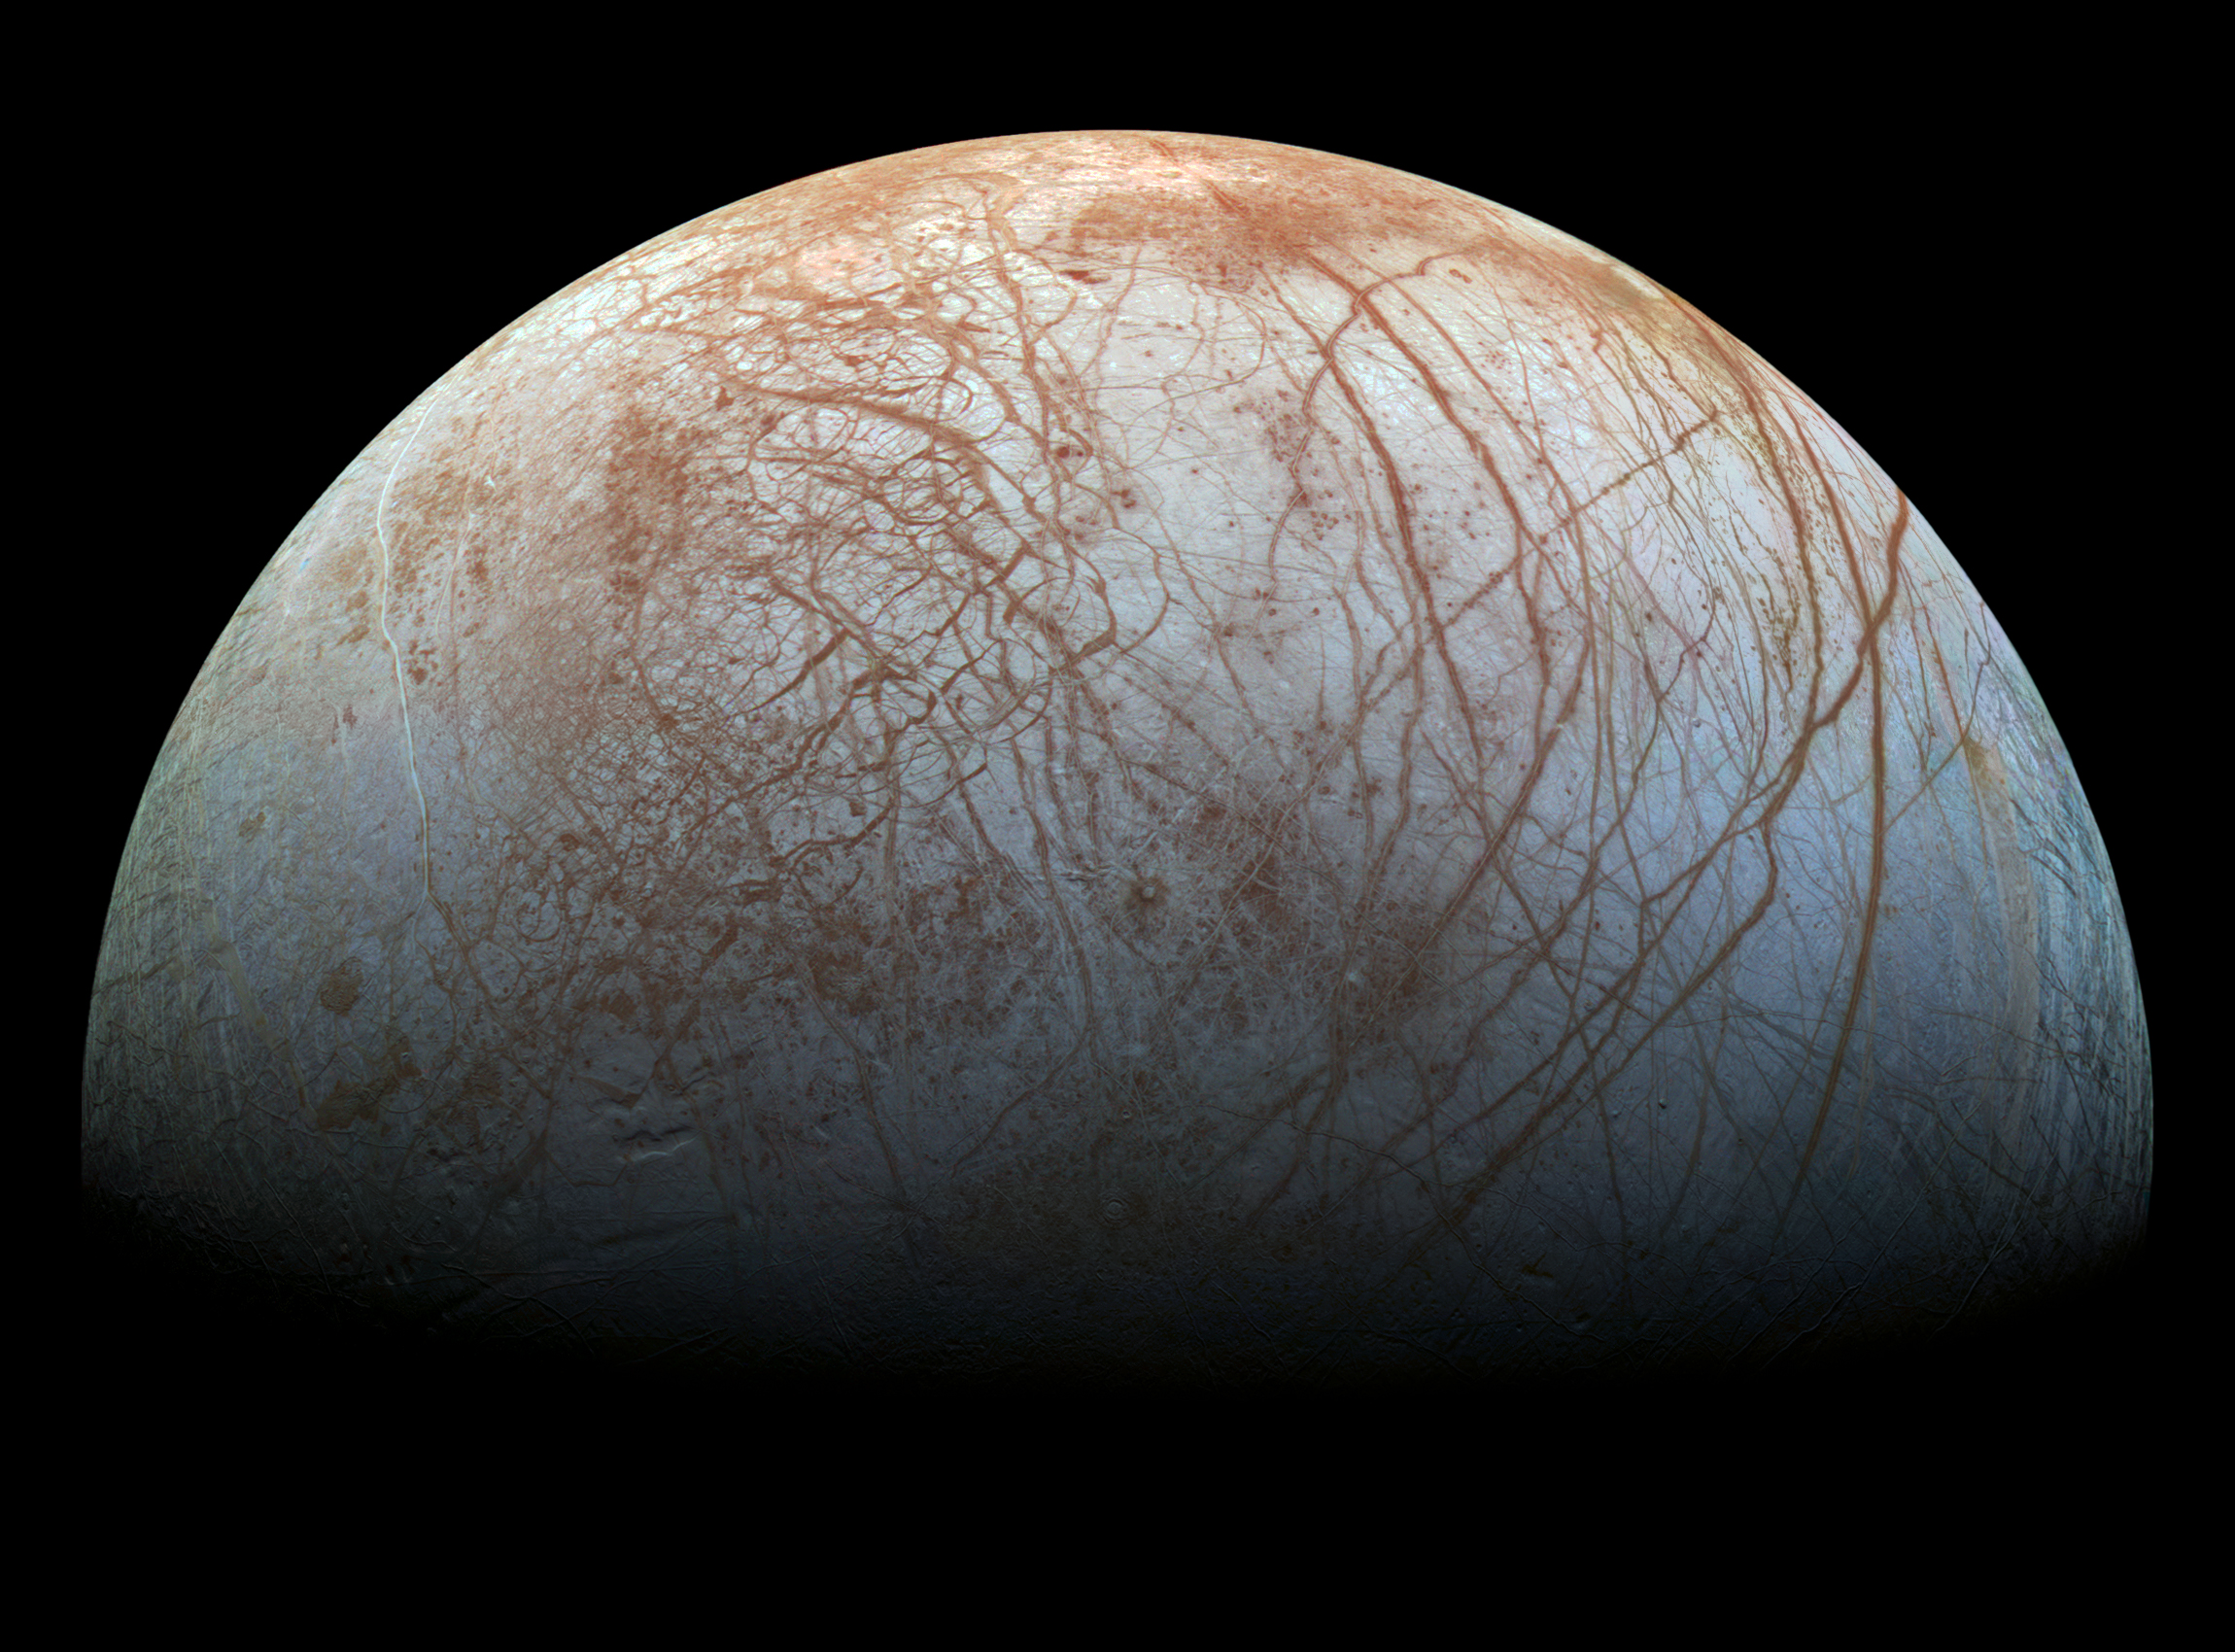 slide 4 - Surface of Jupiter's moon Europa